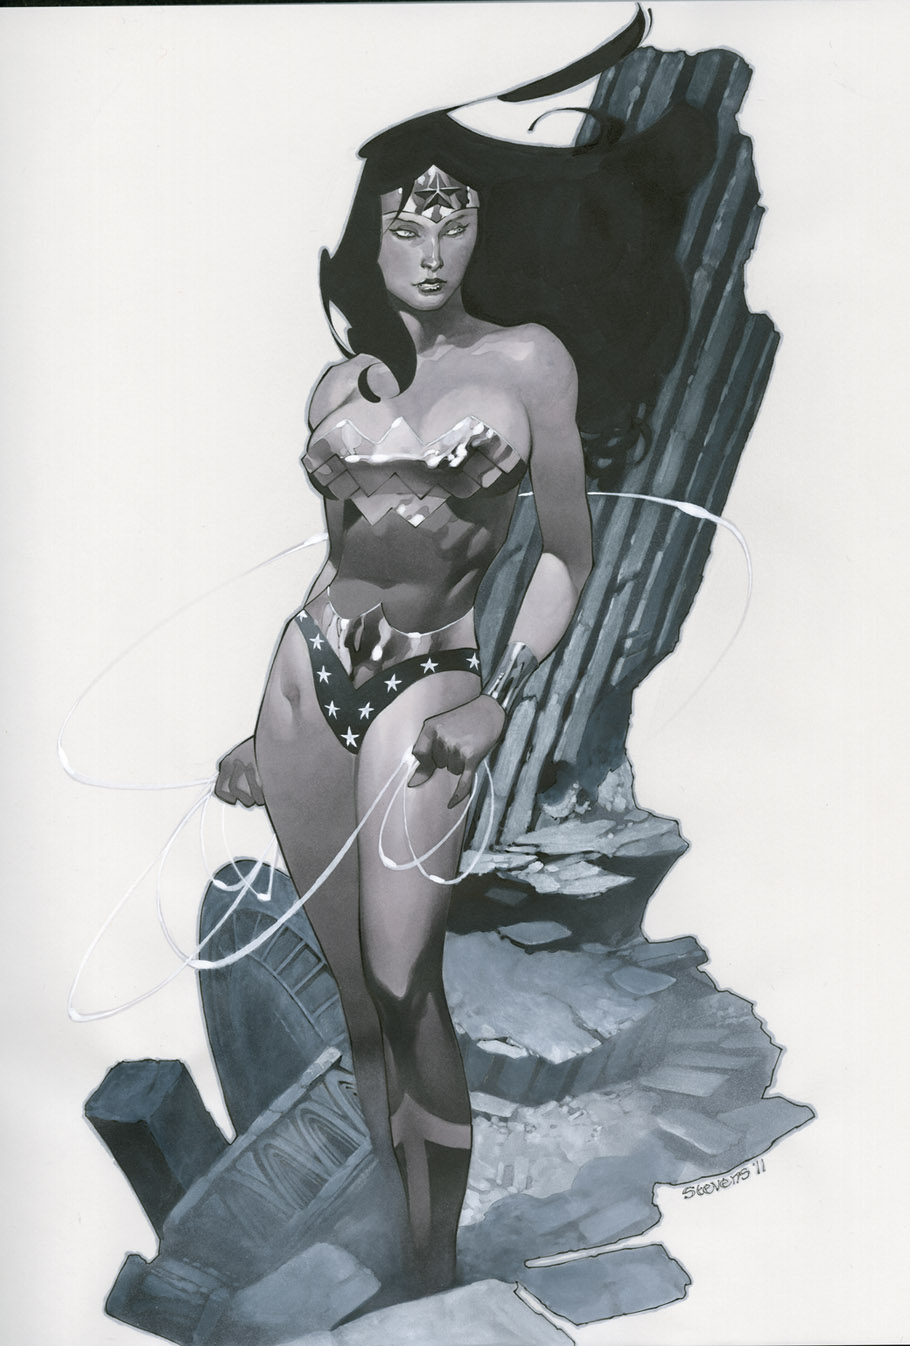 wonder_woman_sketchbook_by_chriss2d-d4lcg5z.jpg